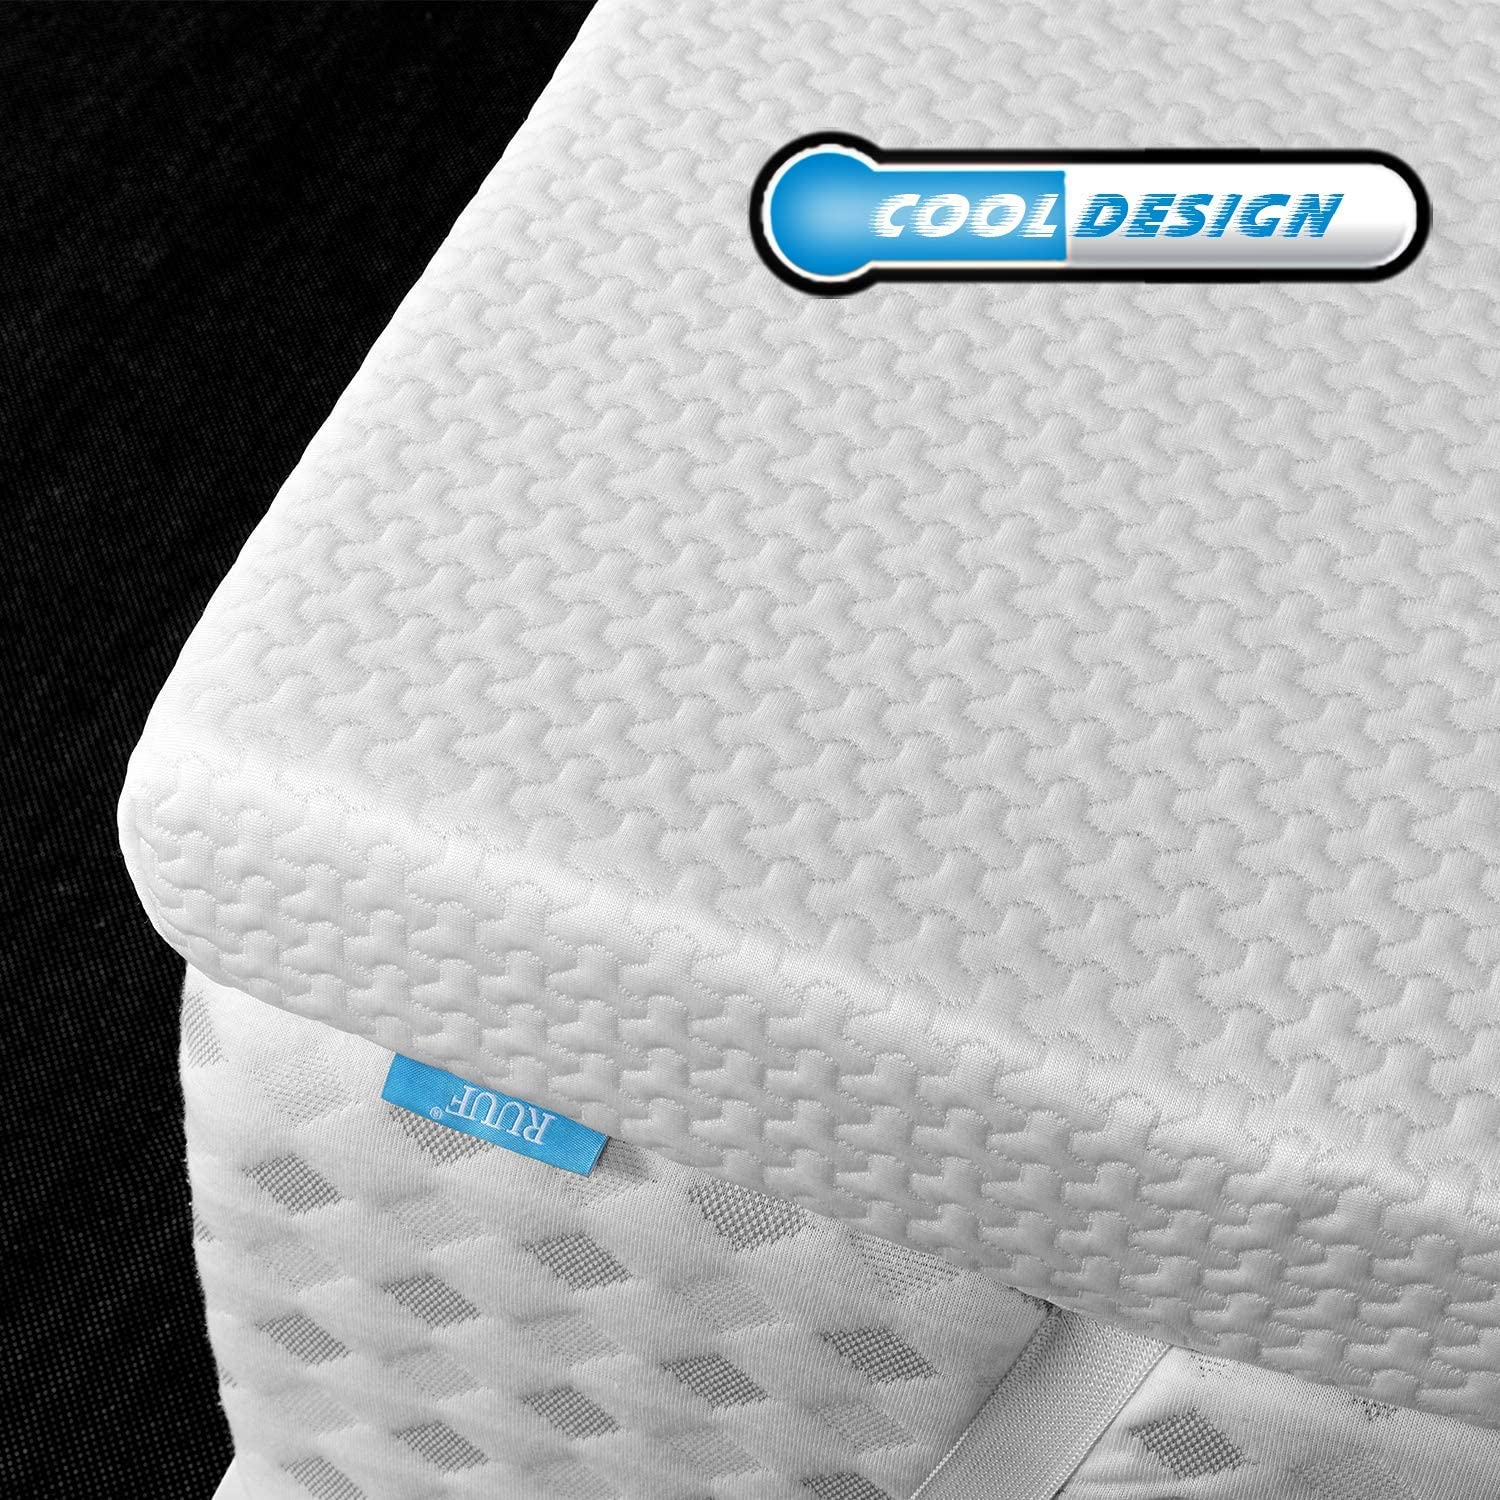 Memory Foam Mattress Topper Full Size – Made in The USA – 2 Inch Full Size Mattress Topper – Next Level Comfort Full Mattress Topper -3 Year Warranty